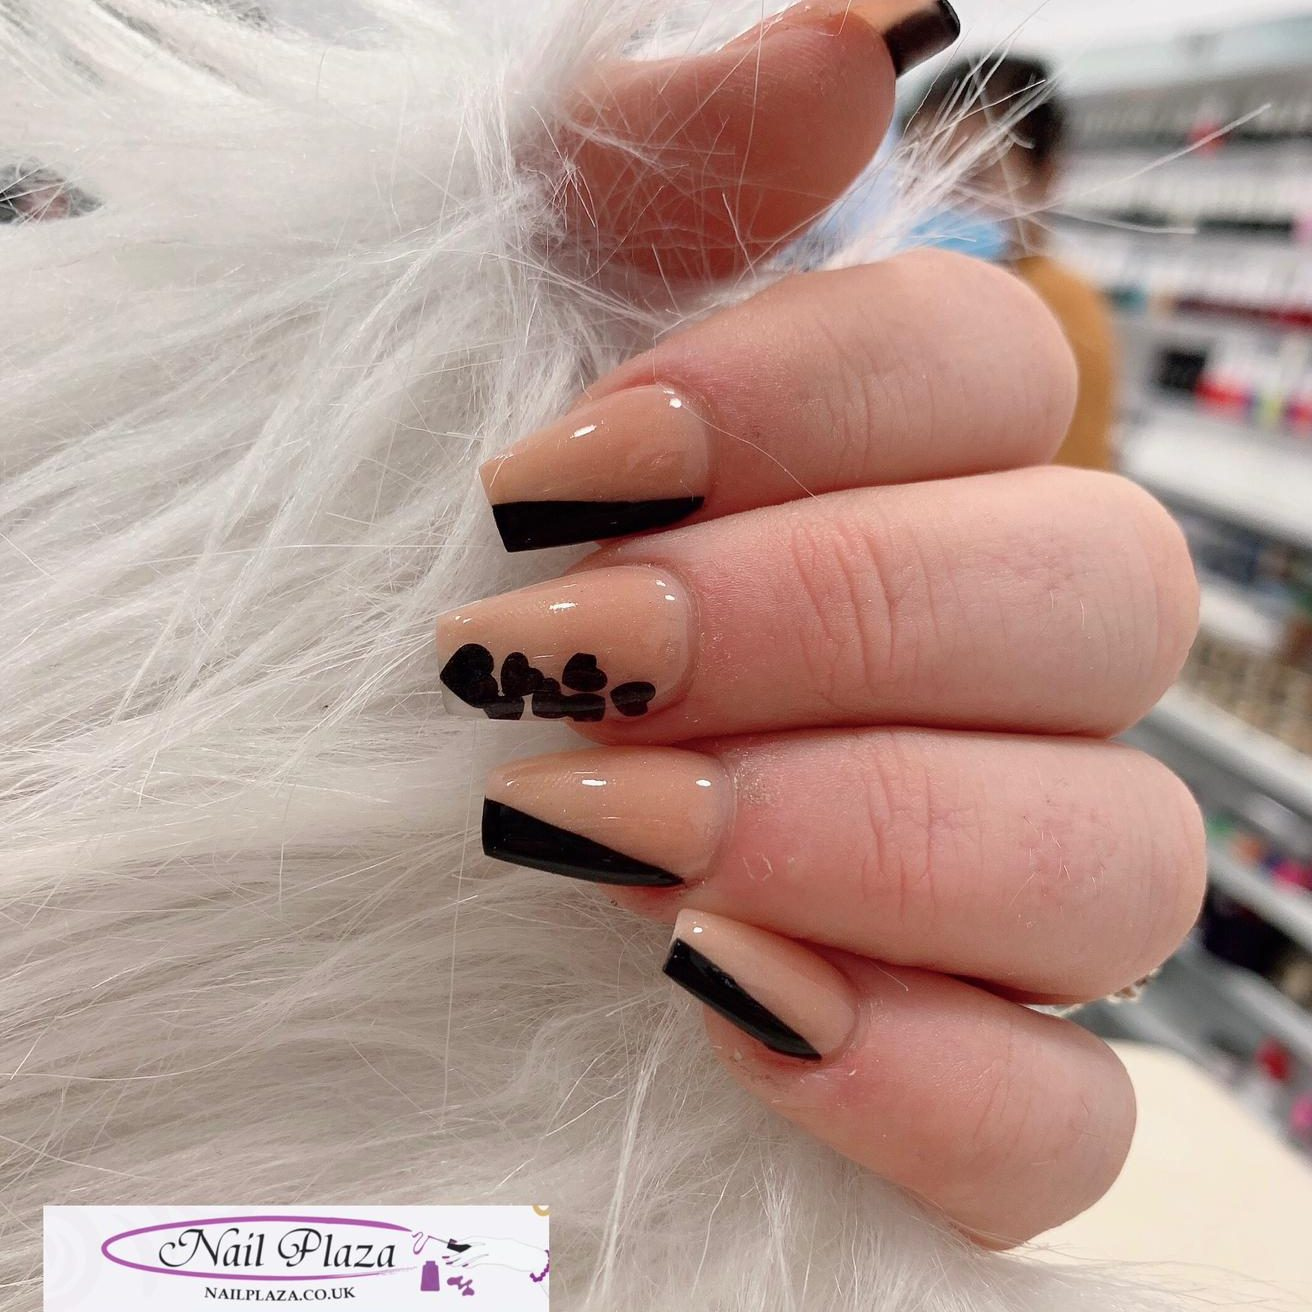 nail-plaza-twickenham-nail-design-061120-10